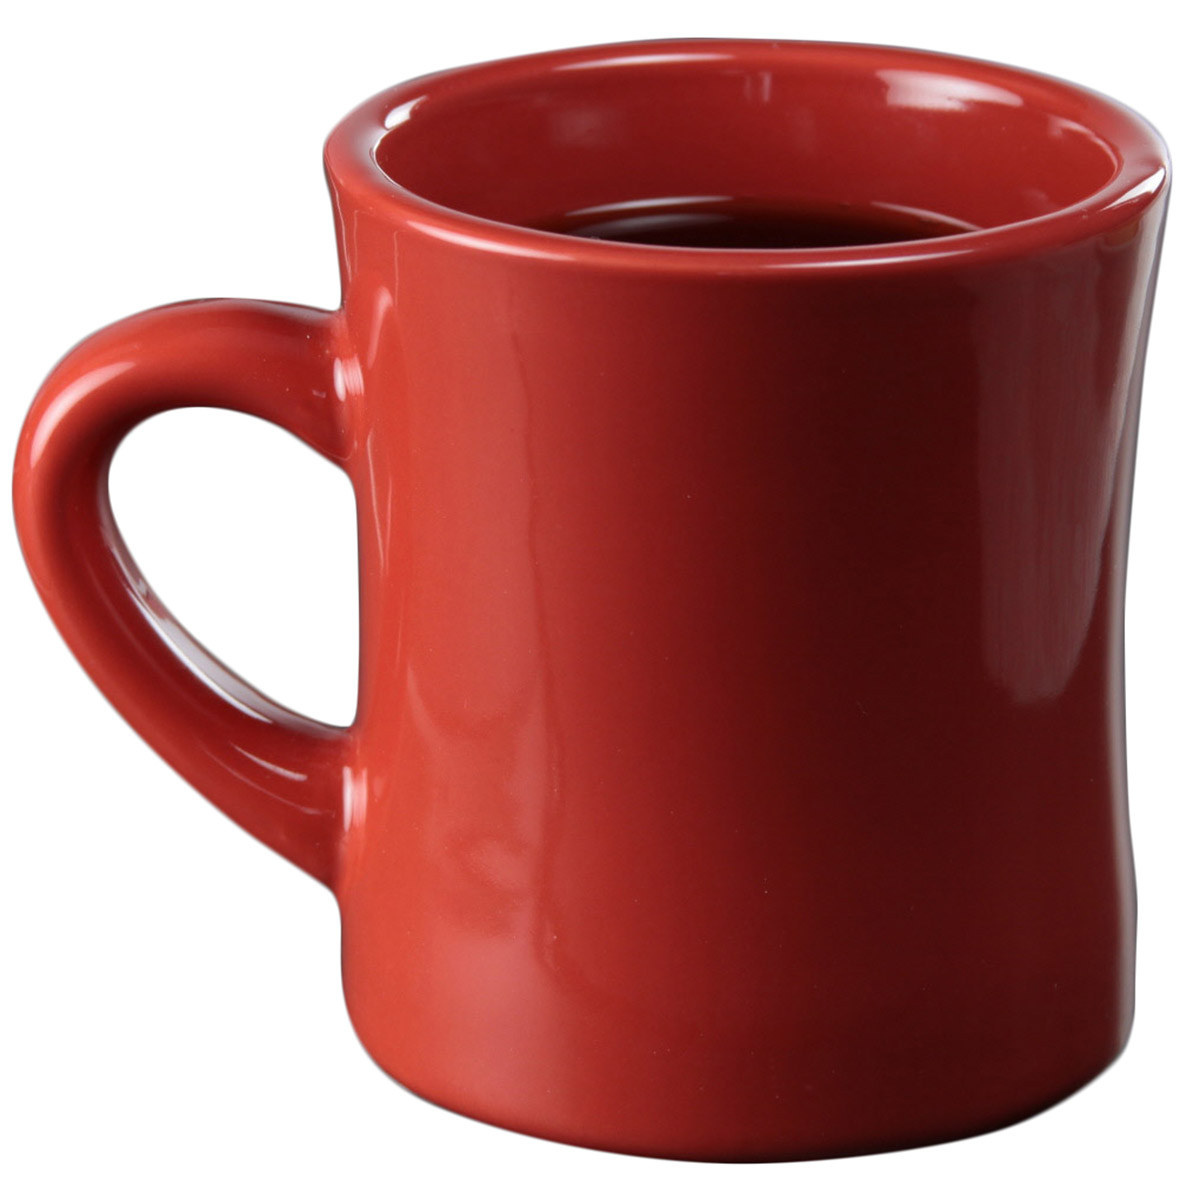 Diner Coffee Mug Stanford Red Ceramic Thick Walled